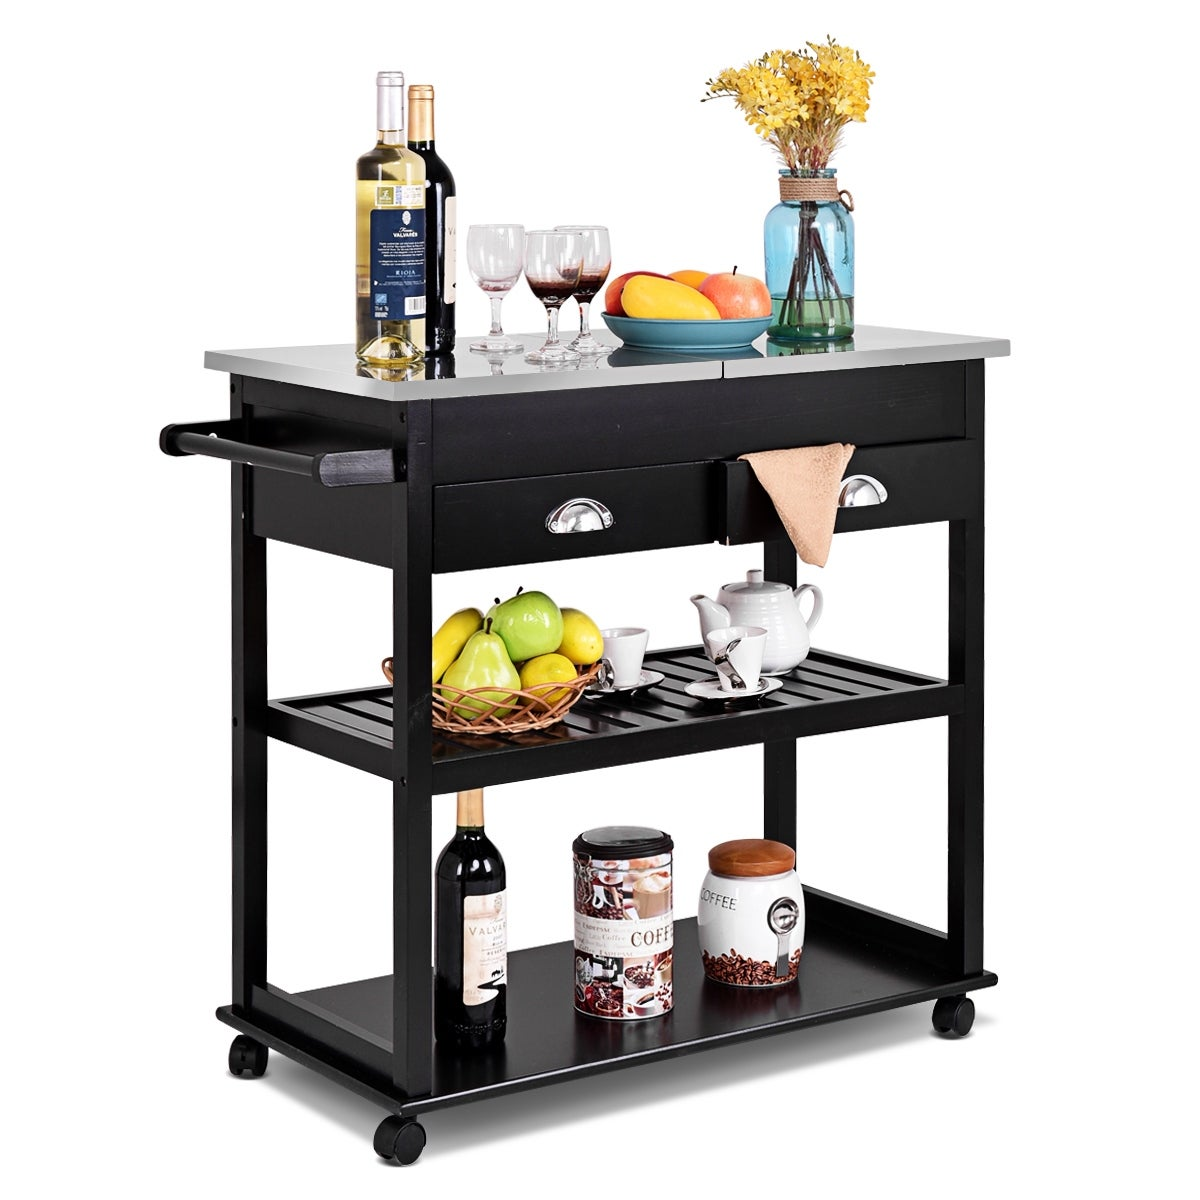 Shop costway rolling kitchen trolley cart stainless steel flip top w drawers casters free shipping today overstock com 16743352